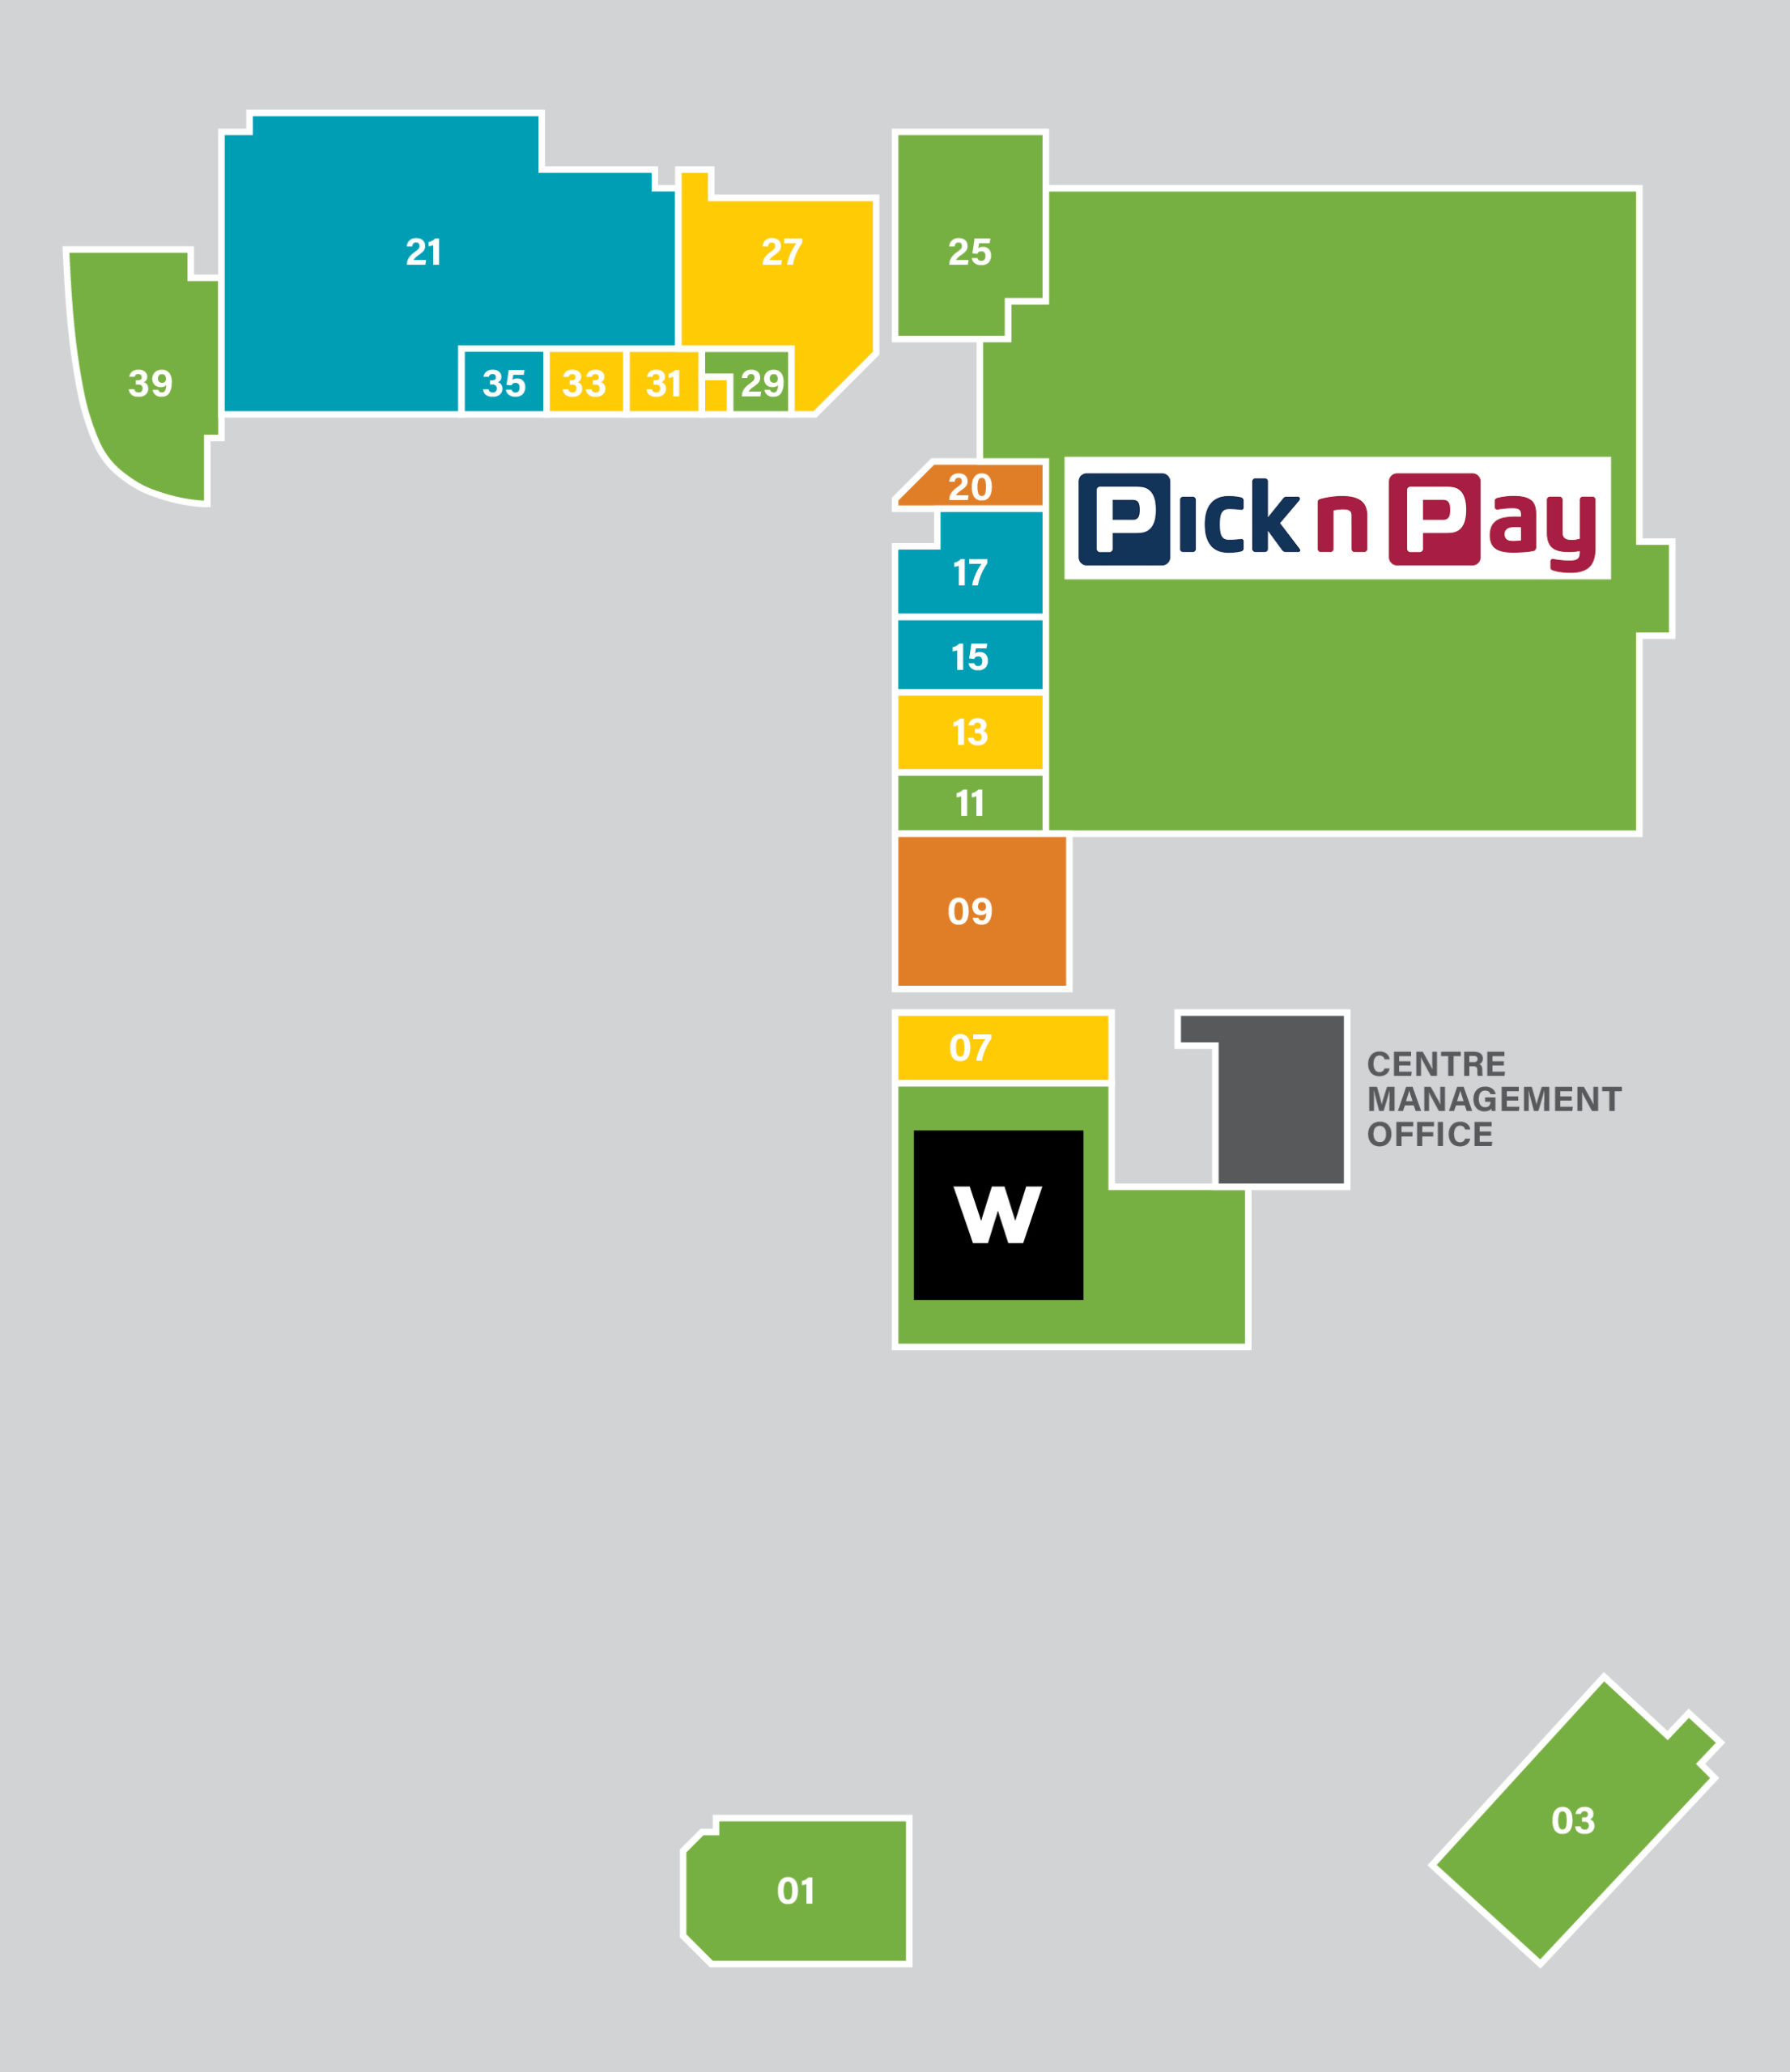 richmond corner shopping centre mall map